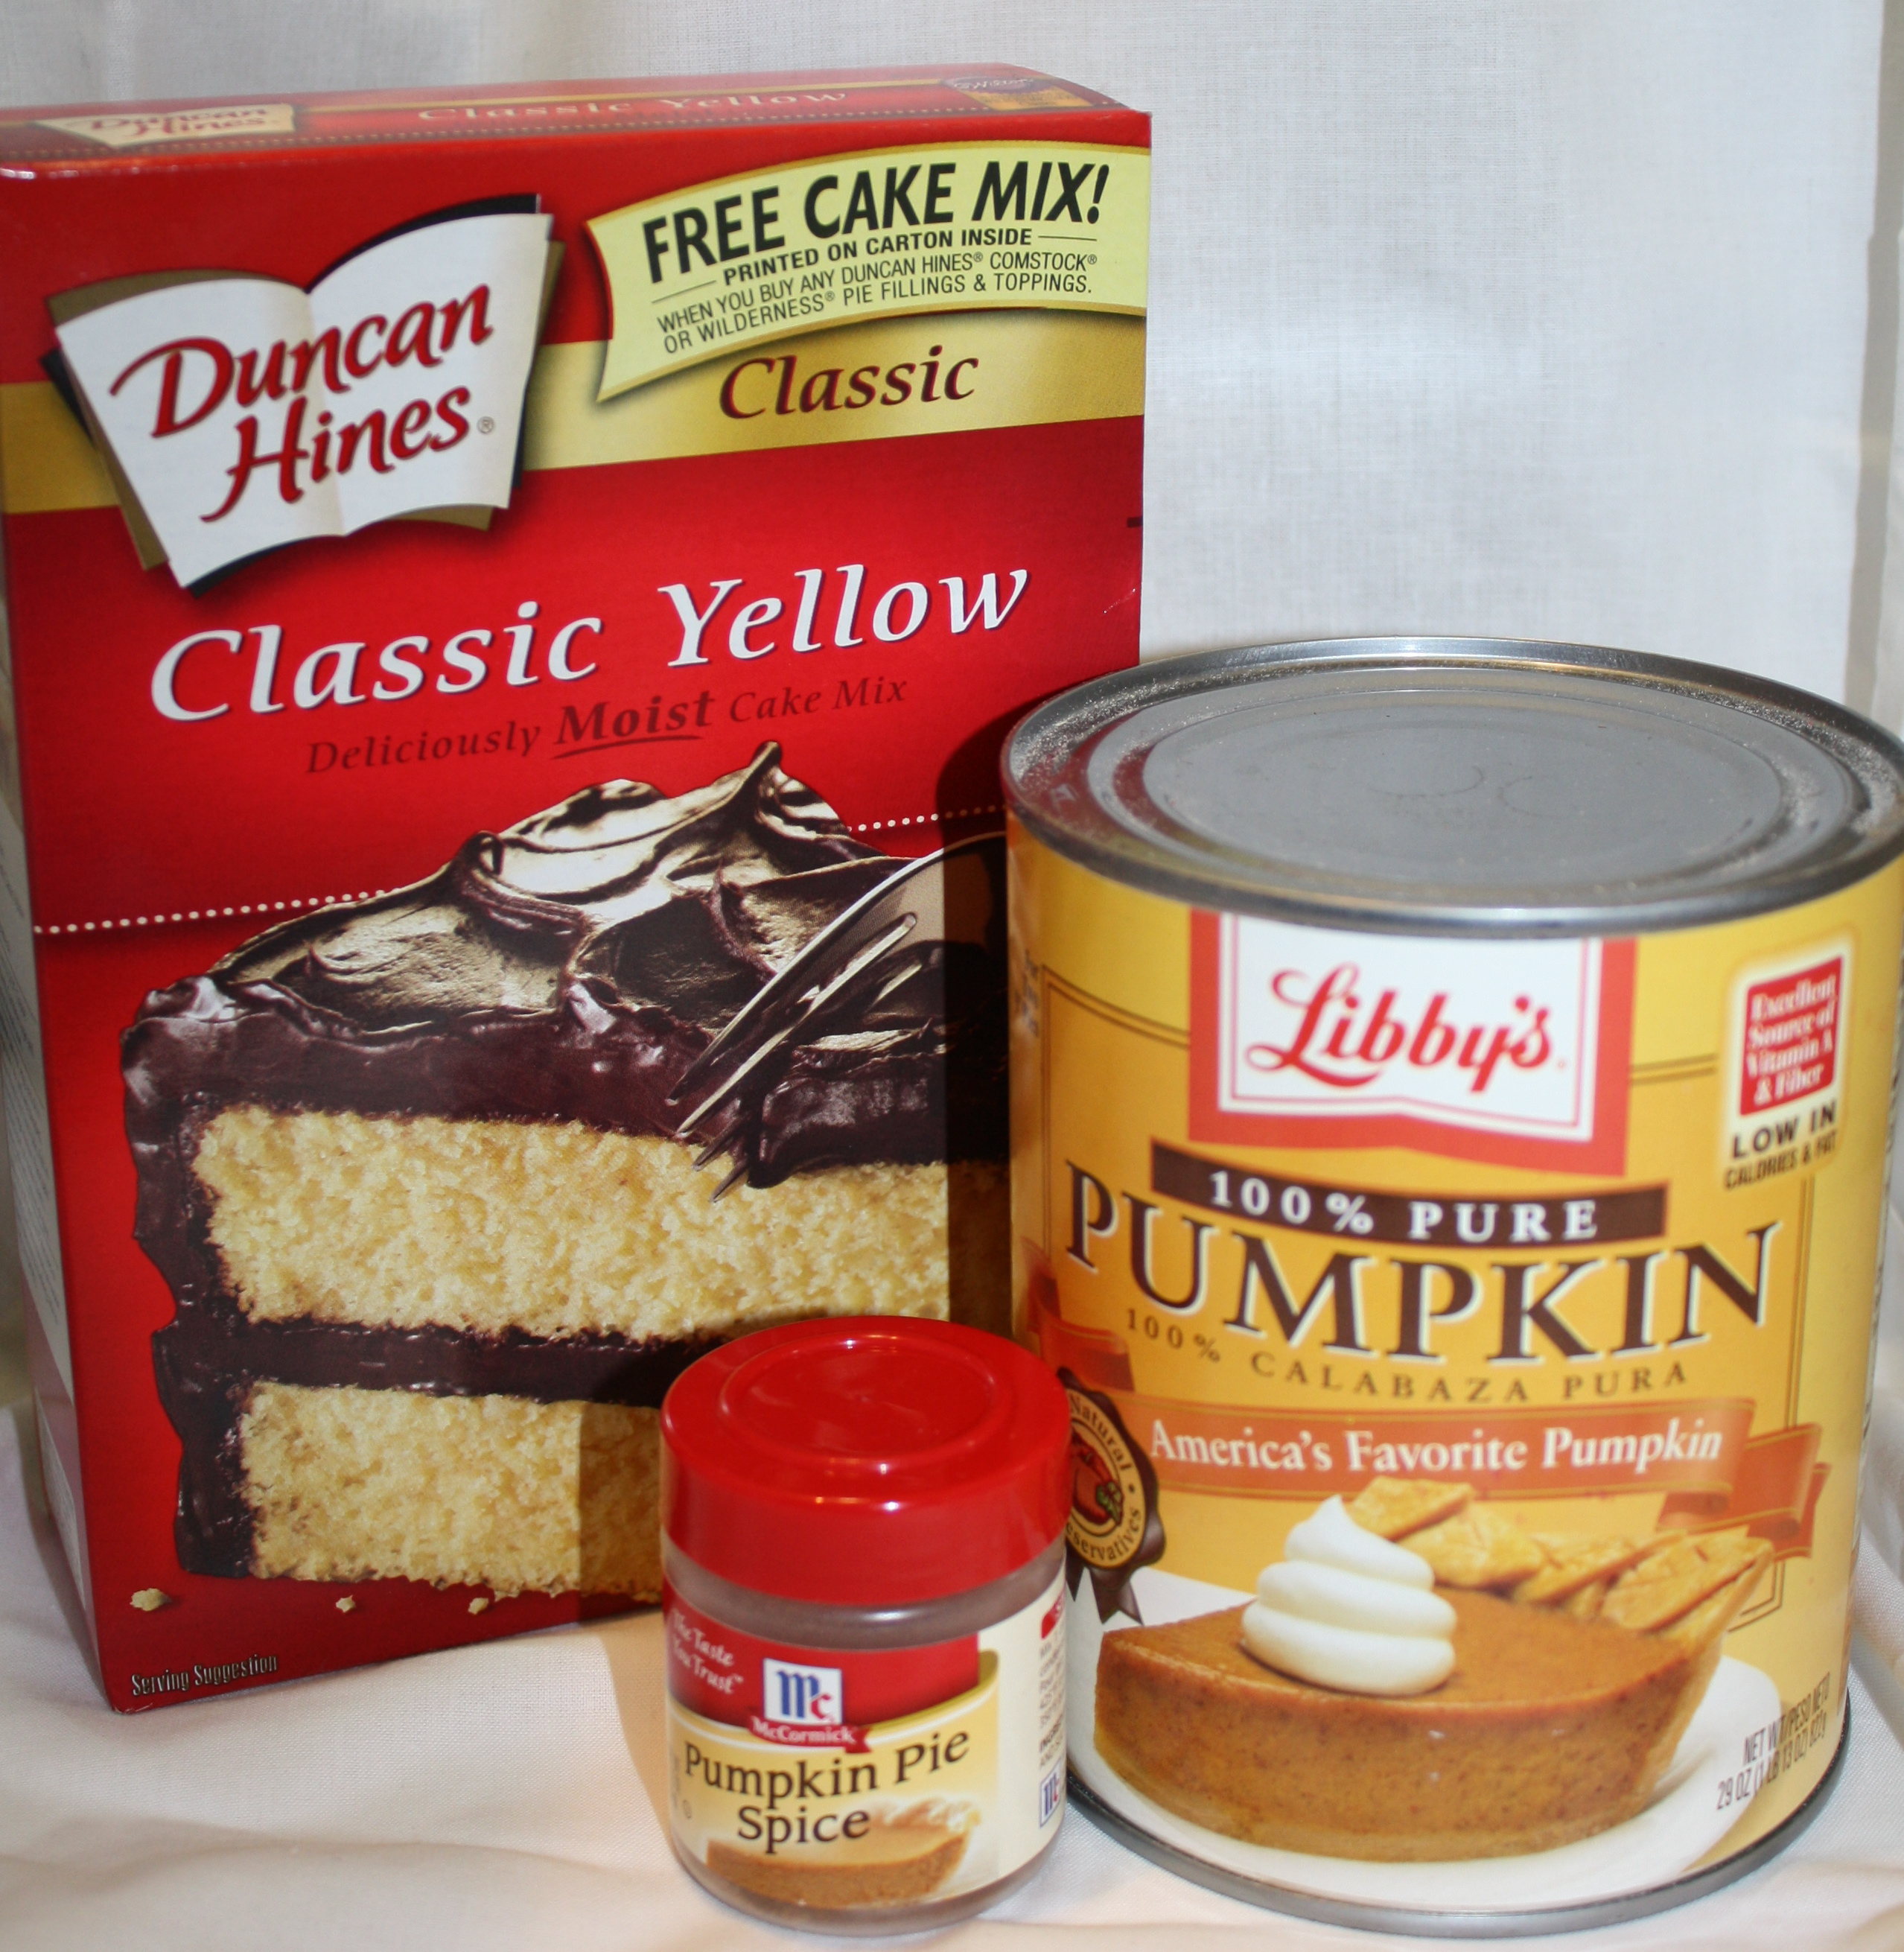 Boxed Cake Mix Add Pudding